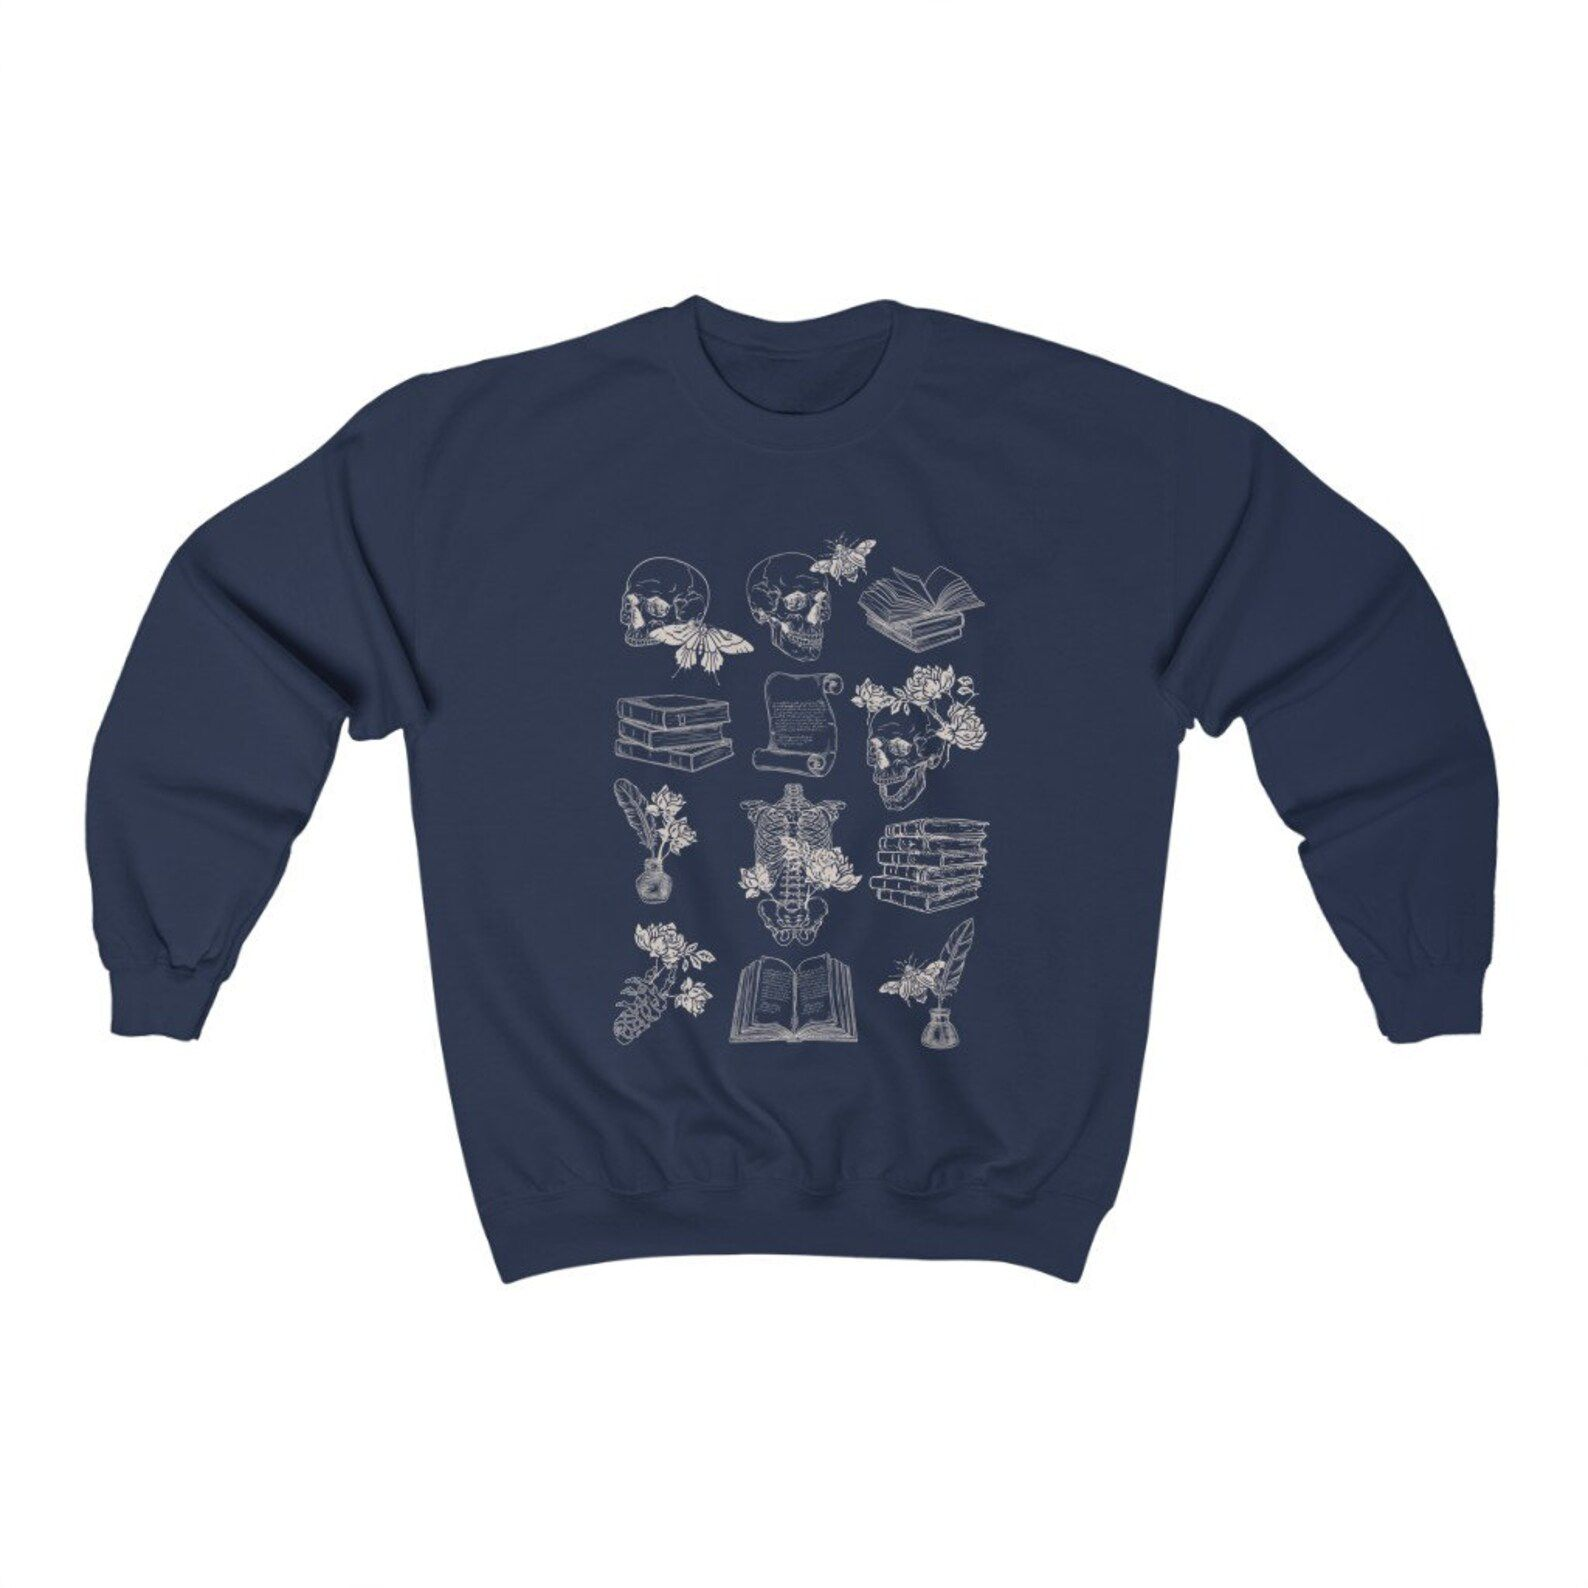 Image of a blue sweatshirt. In the center are images of skulls, moths, books, and a skeleton, all in white ink.